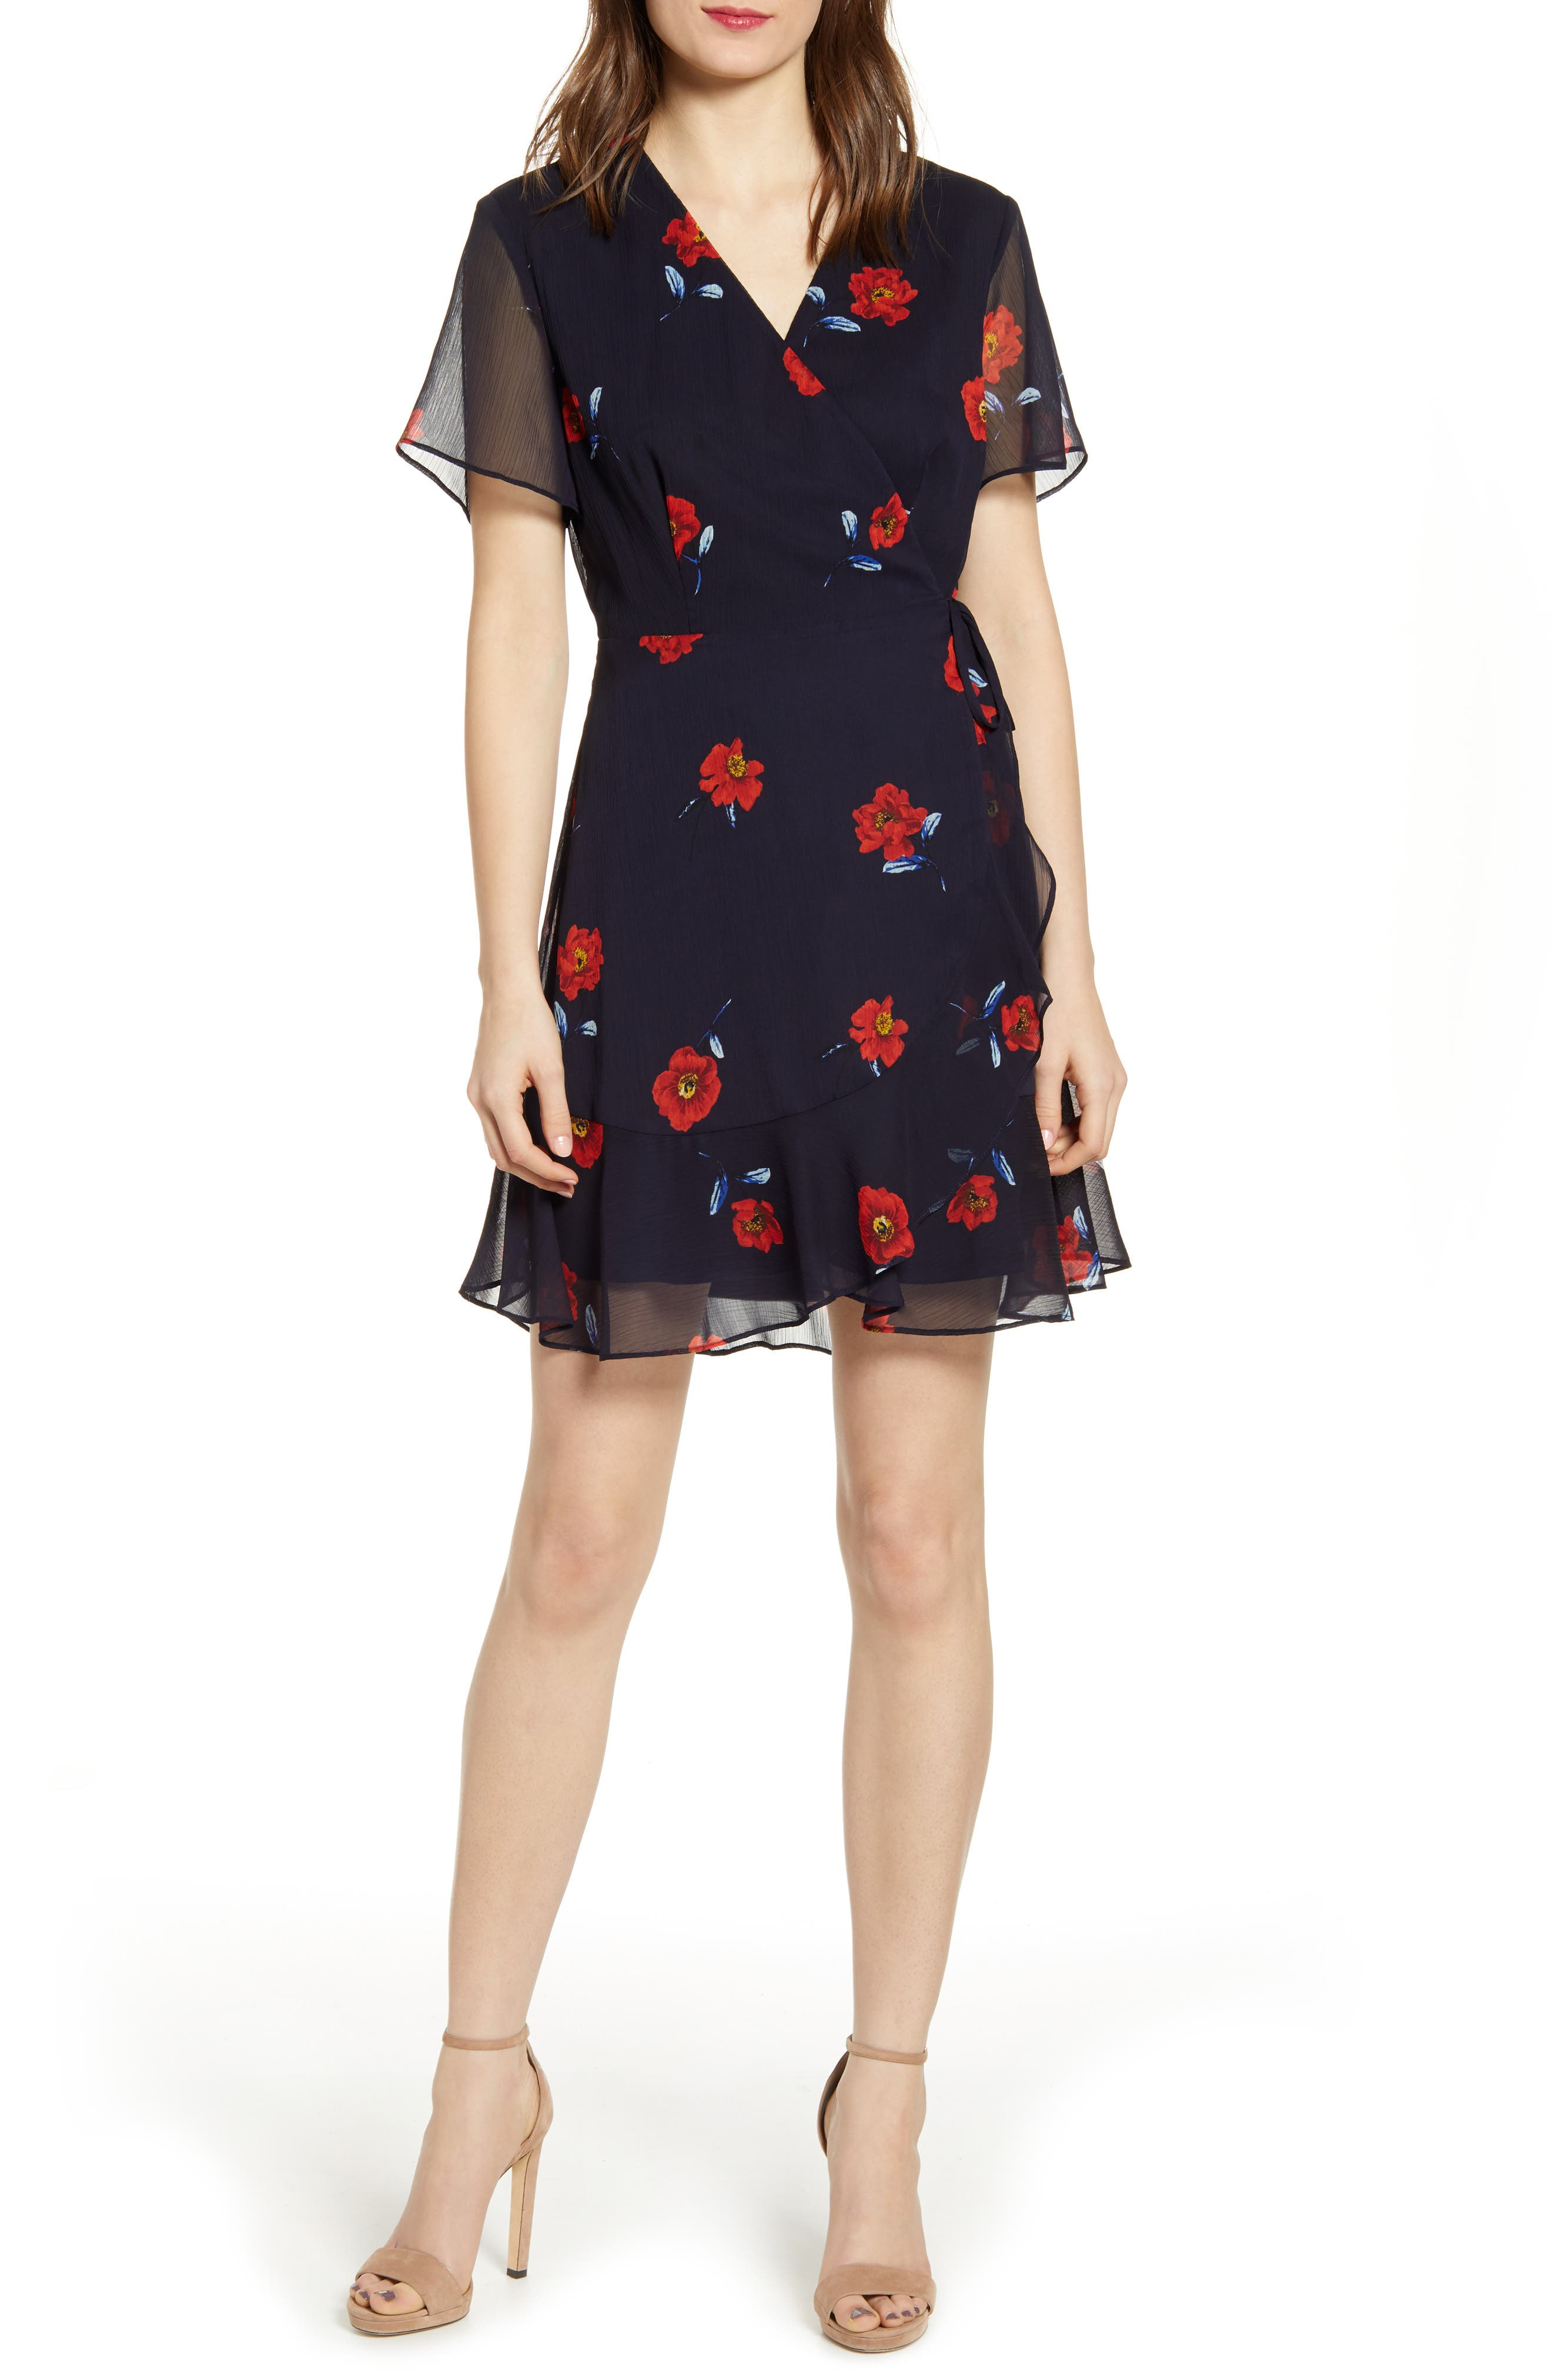 3a127a4c2 Women's All In Favor Dresses | Nordstrom